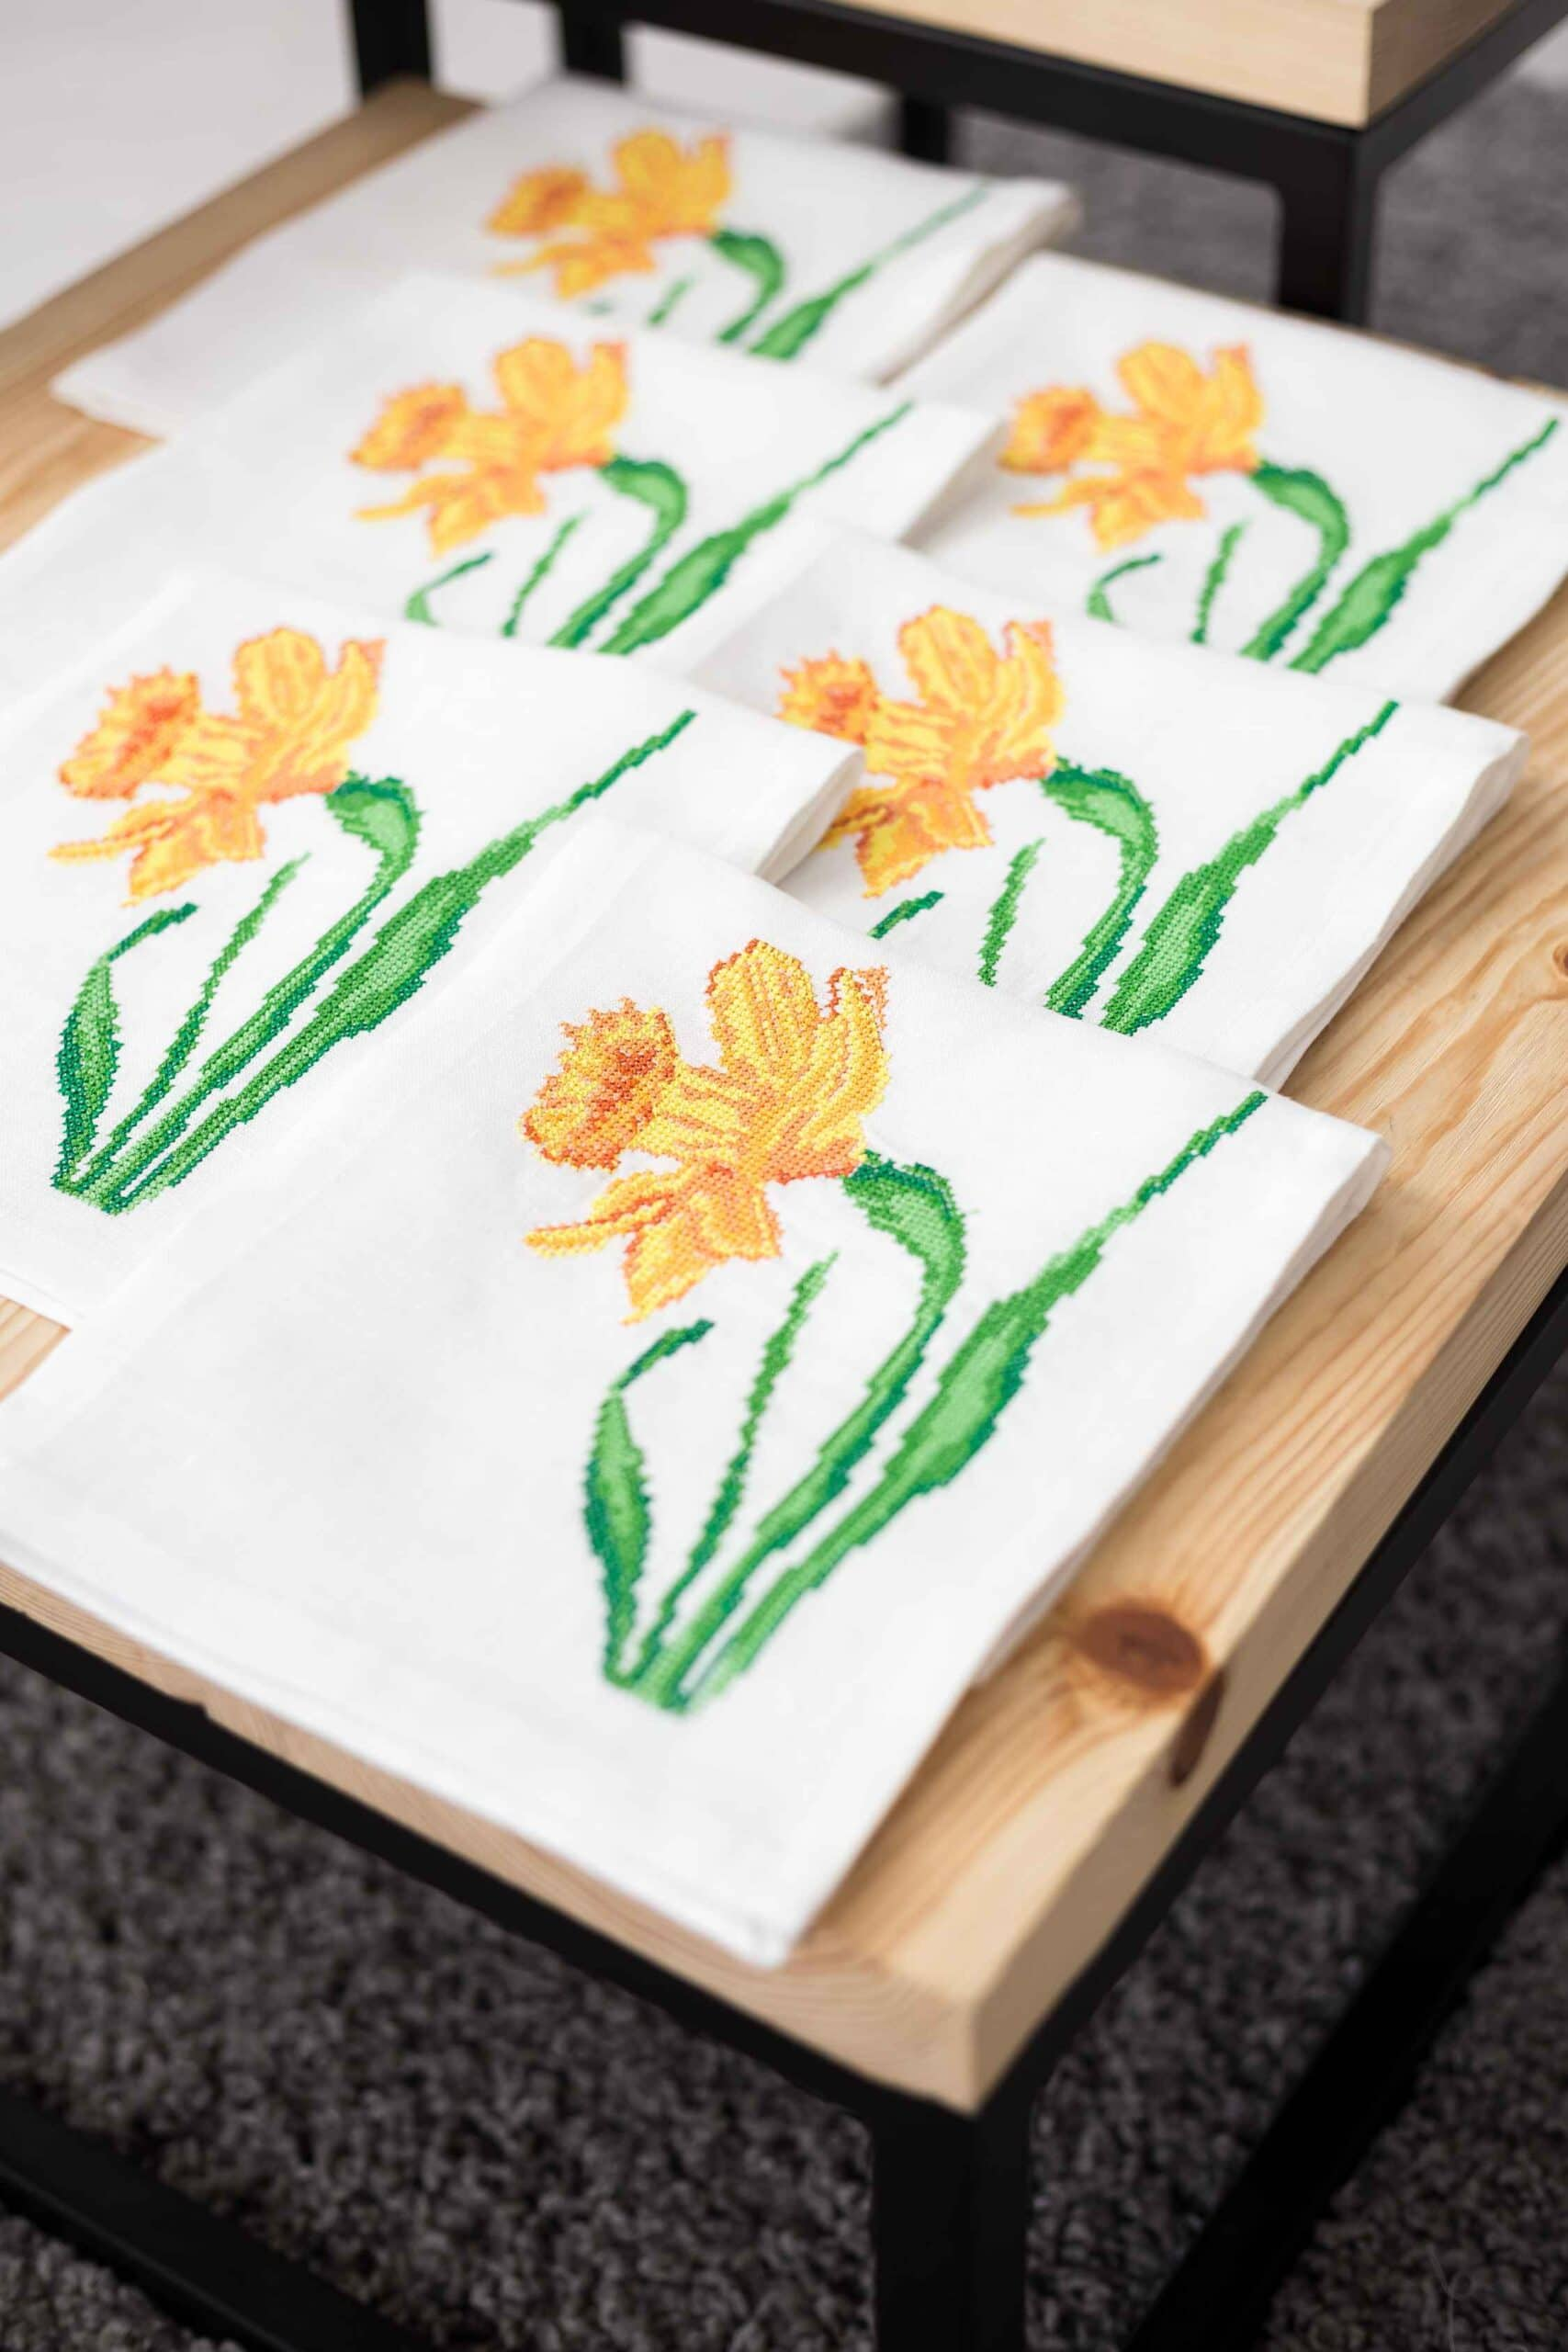 napkins with embroidery wildflowers